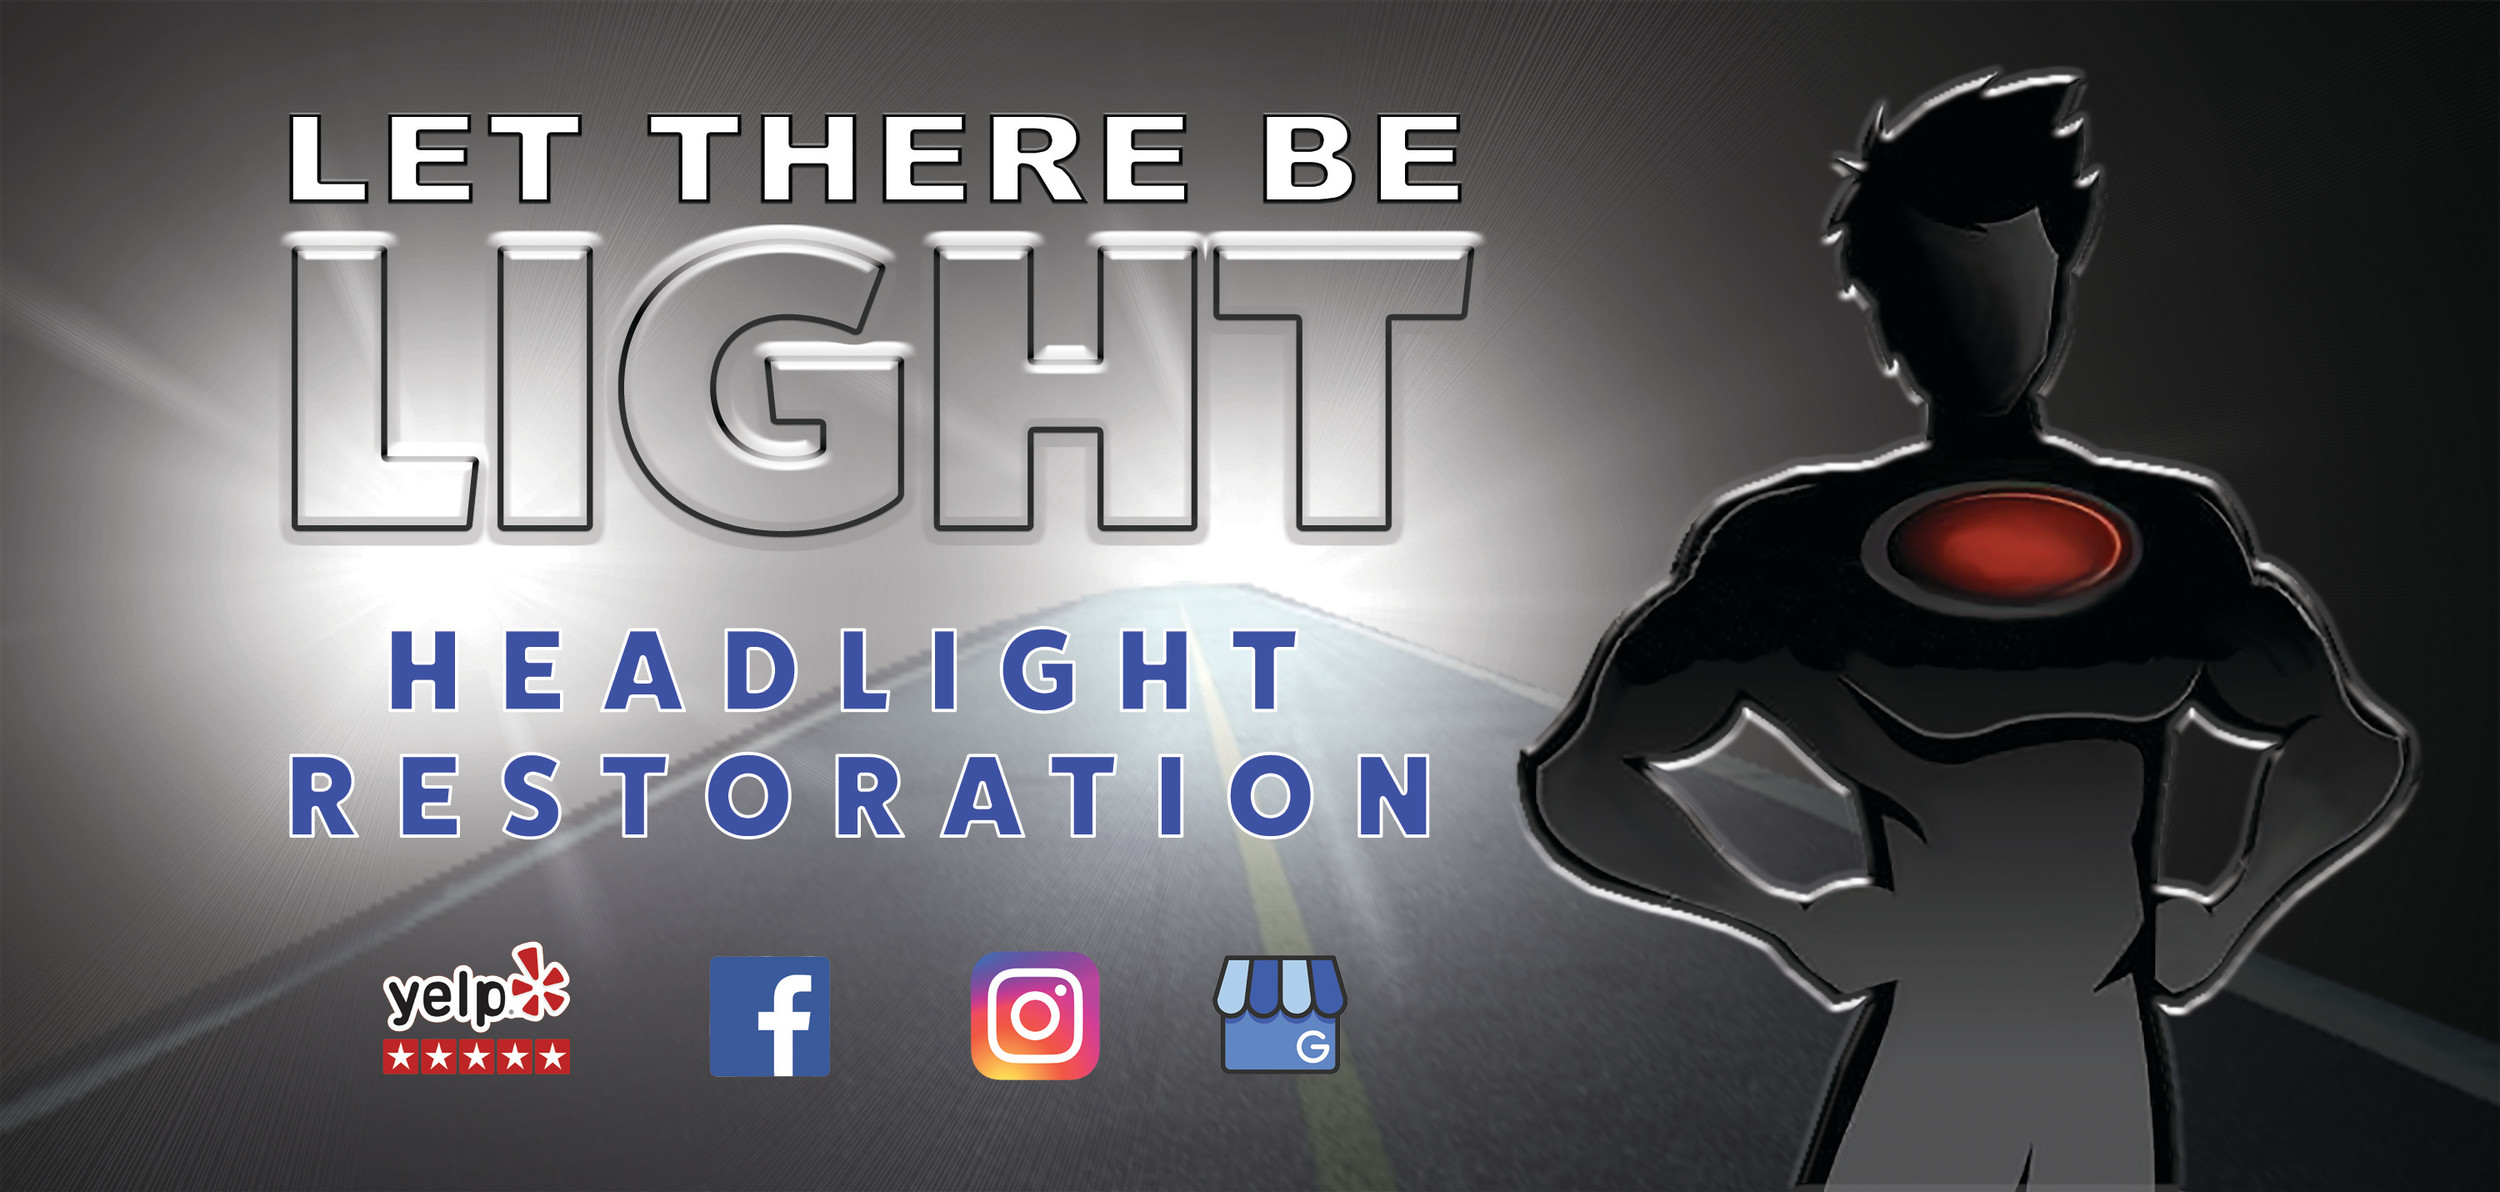 Let There Be Light Mobile Headlight Restoration Service